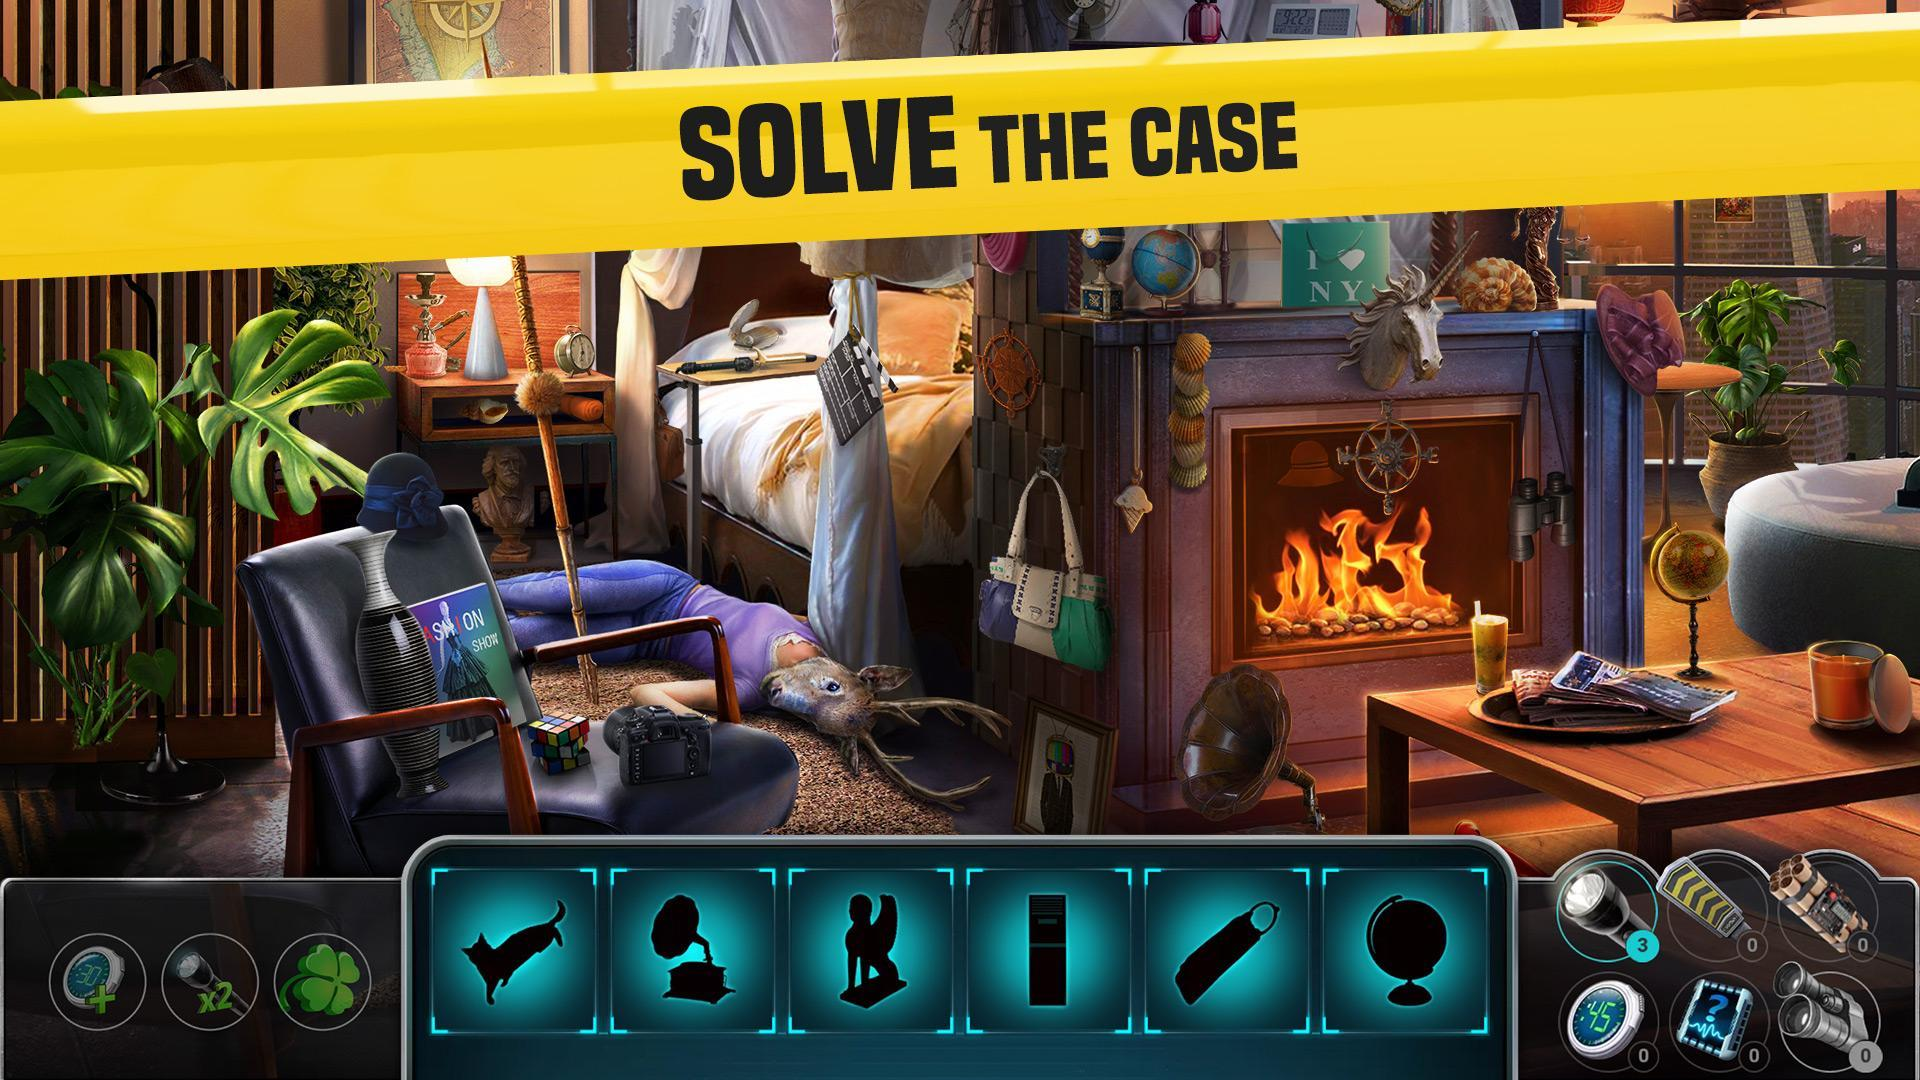 Homicide Squad New York Cases 2.30.3700 Screenshot 18